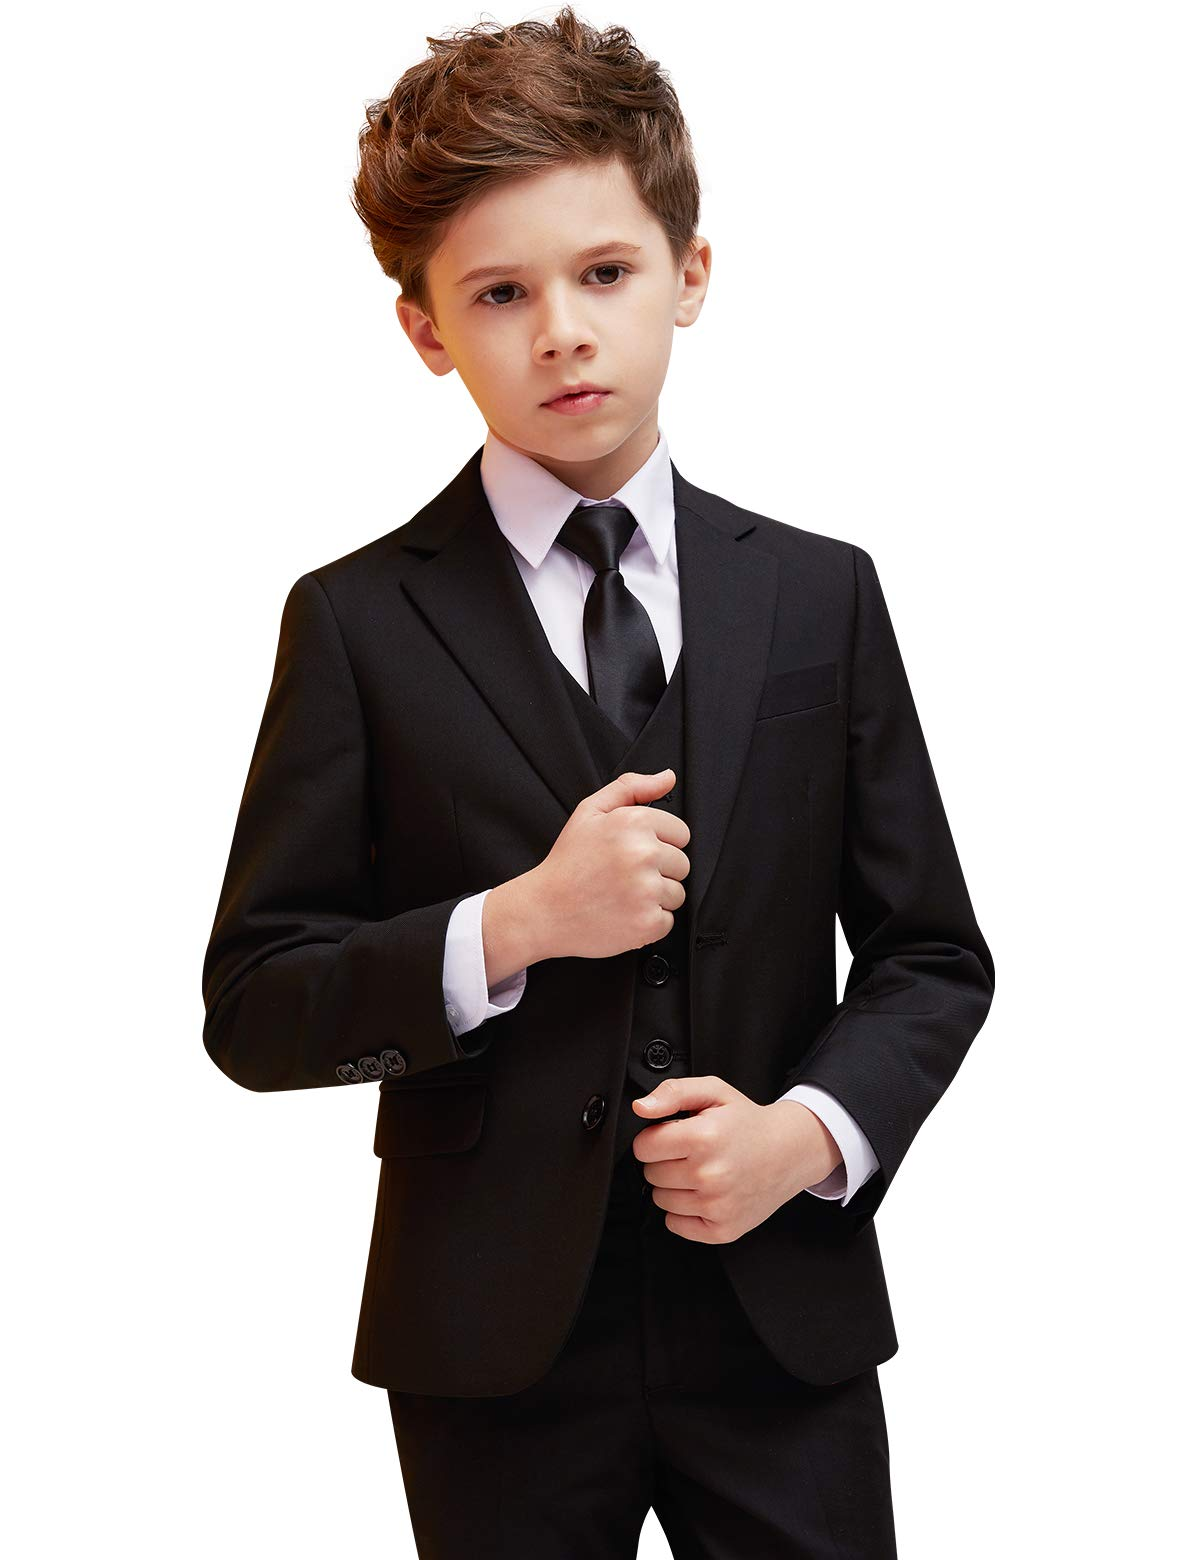 ELPA ELPA Boys Suits Children's Slim Fit Formal Suit 6 Piece Youth Solid Color Clothing for Wedding Suits Tuxedo